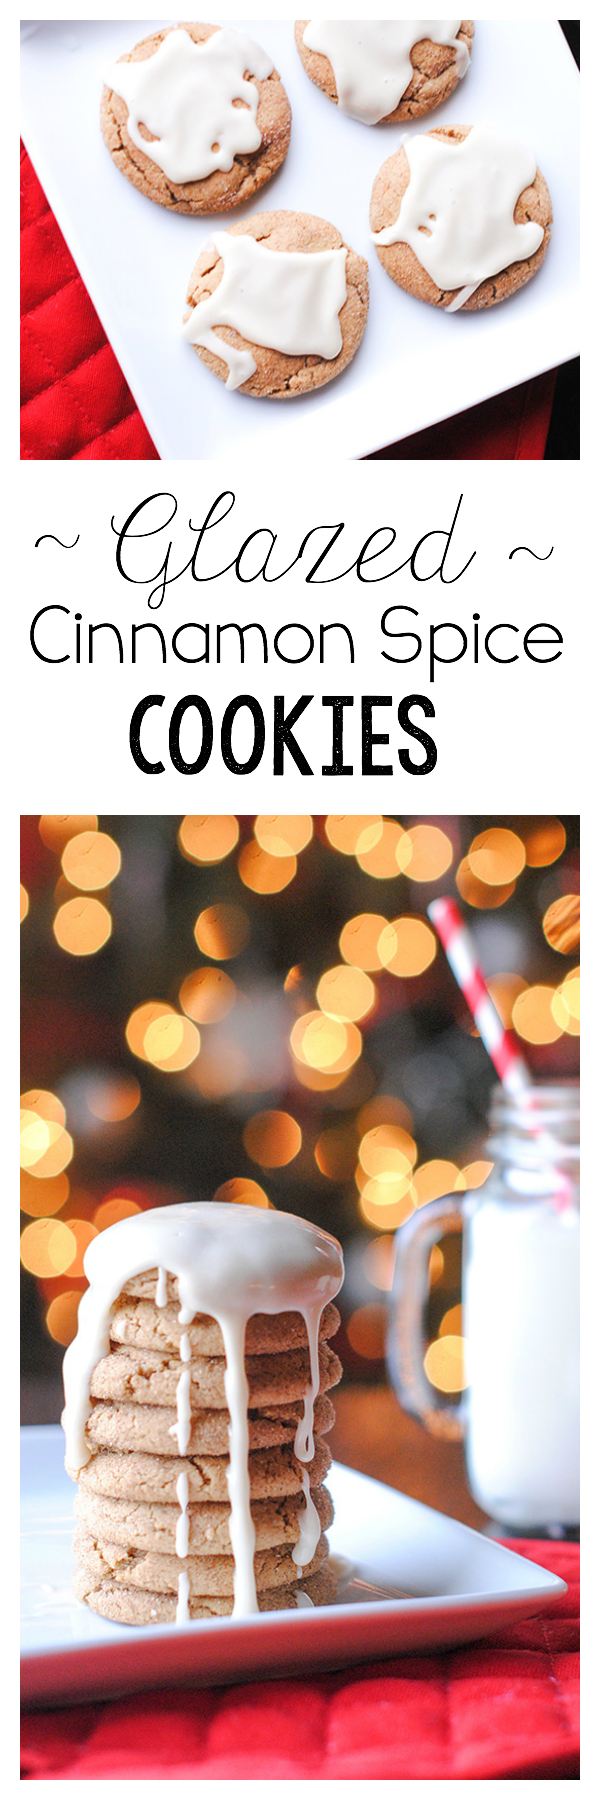 Glazed Cinnamon Spice Cookies